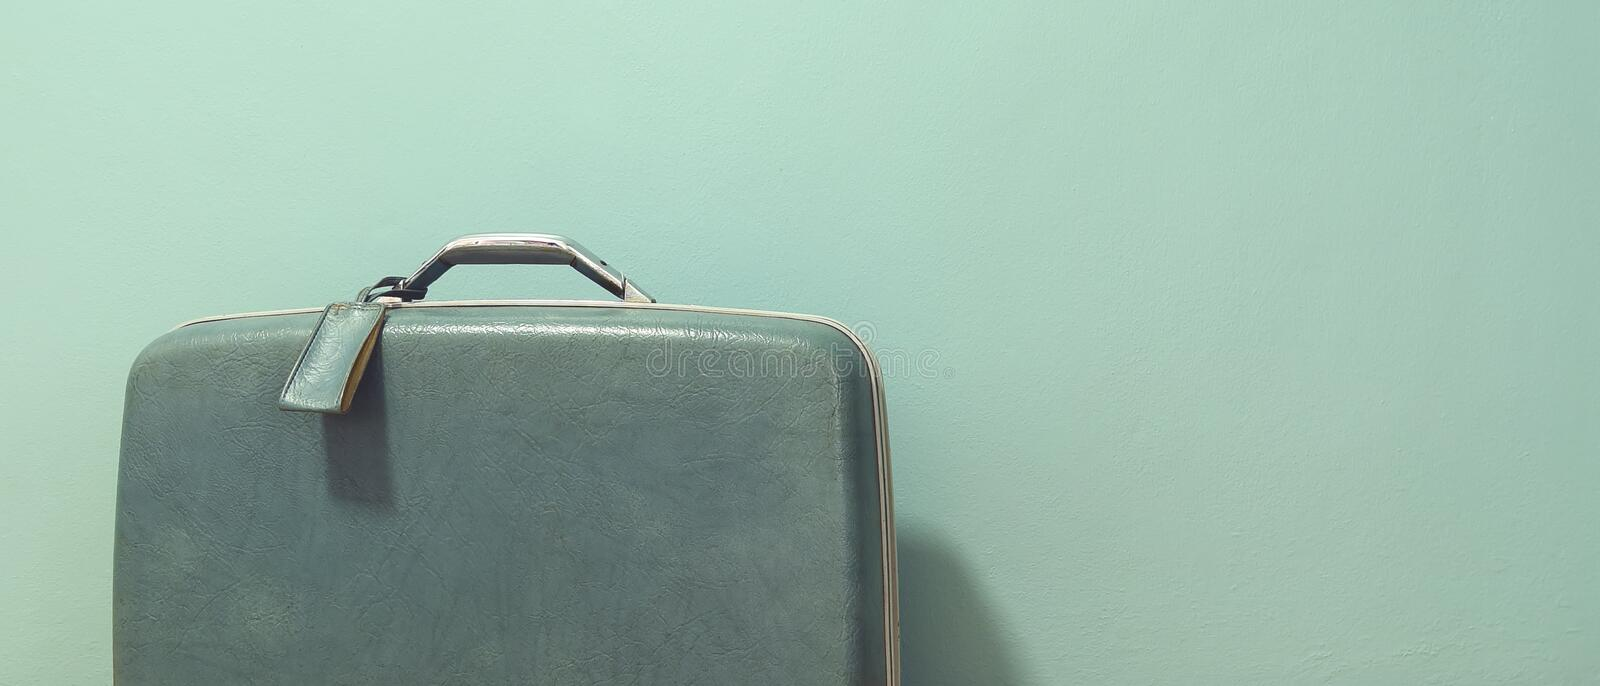 Vintage suitcase for travel stock photo